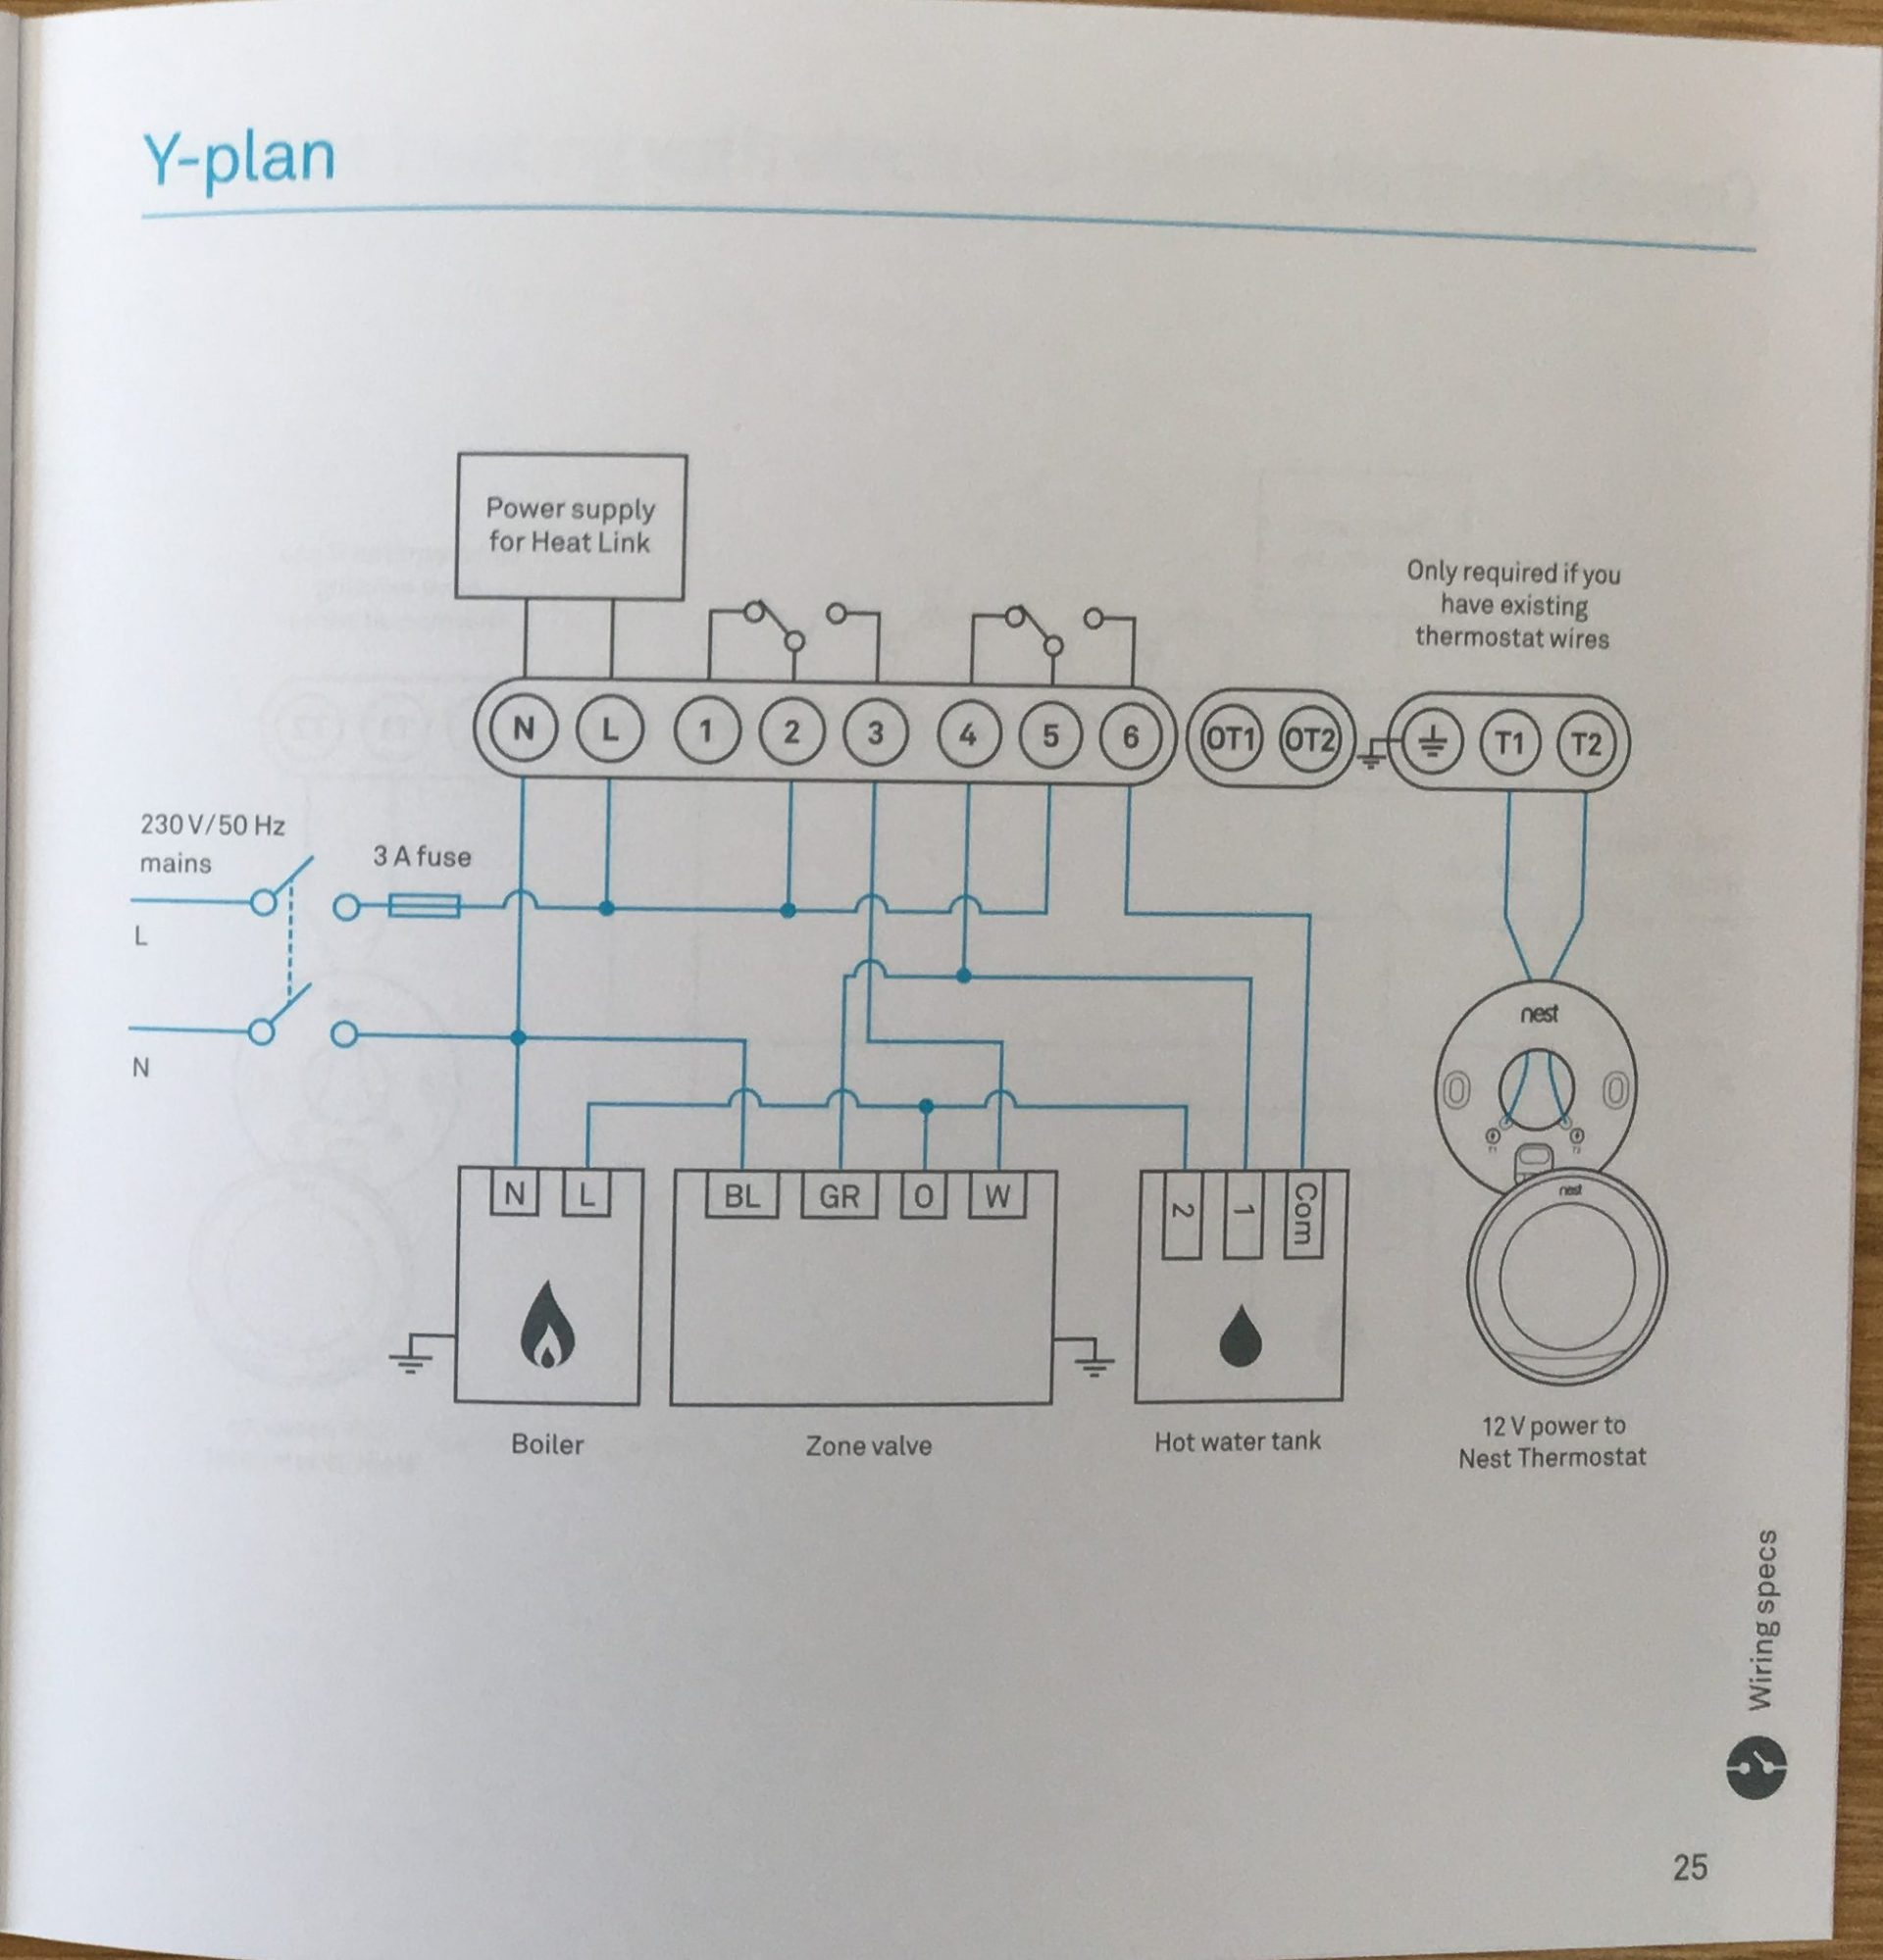 How To Install The Nest Learning Thermostat (3Rd Gen) In A Y-Plan - Nest Pro Wiring Diagram